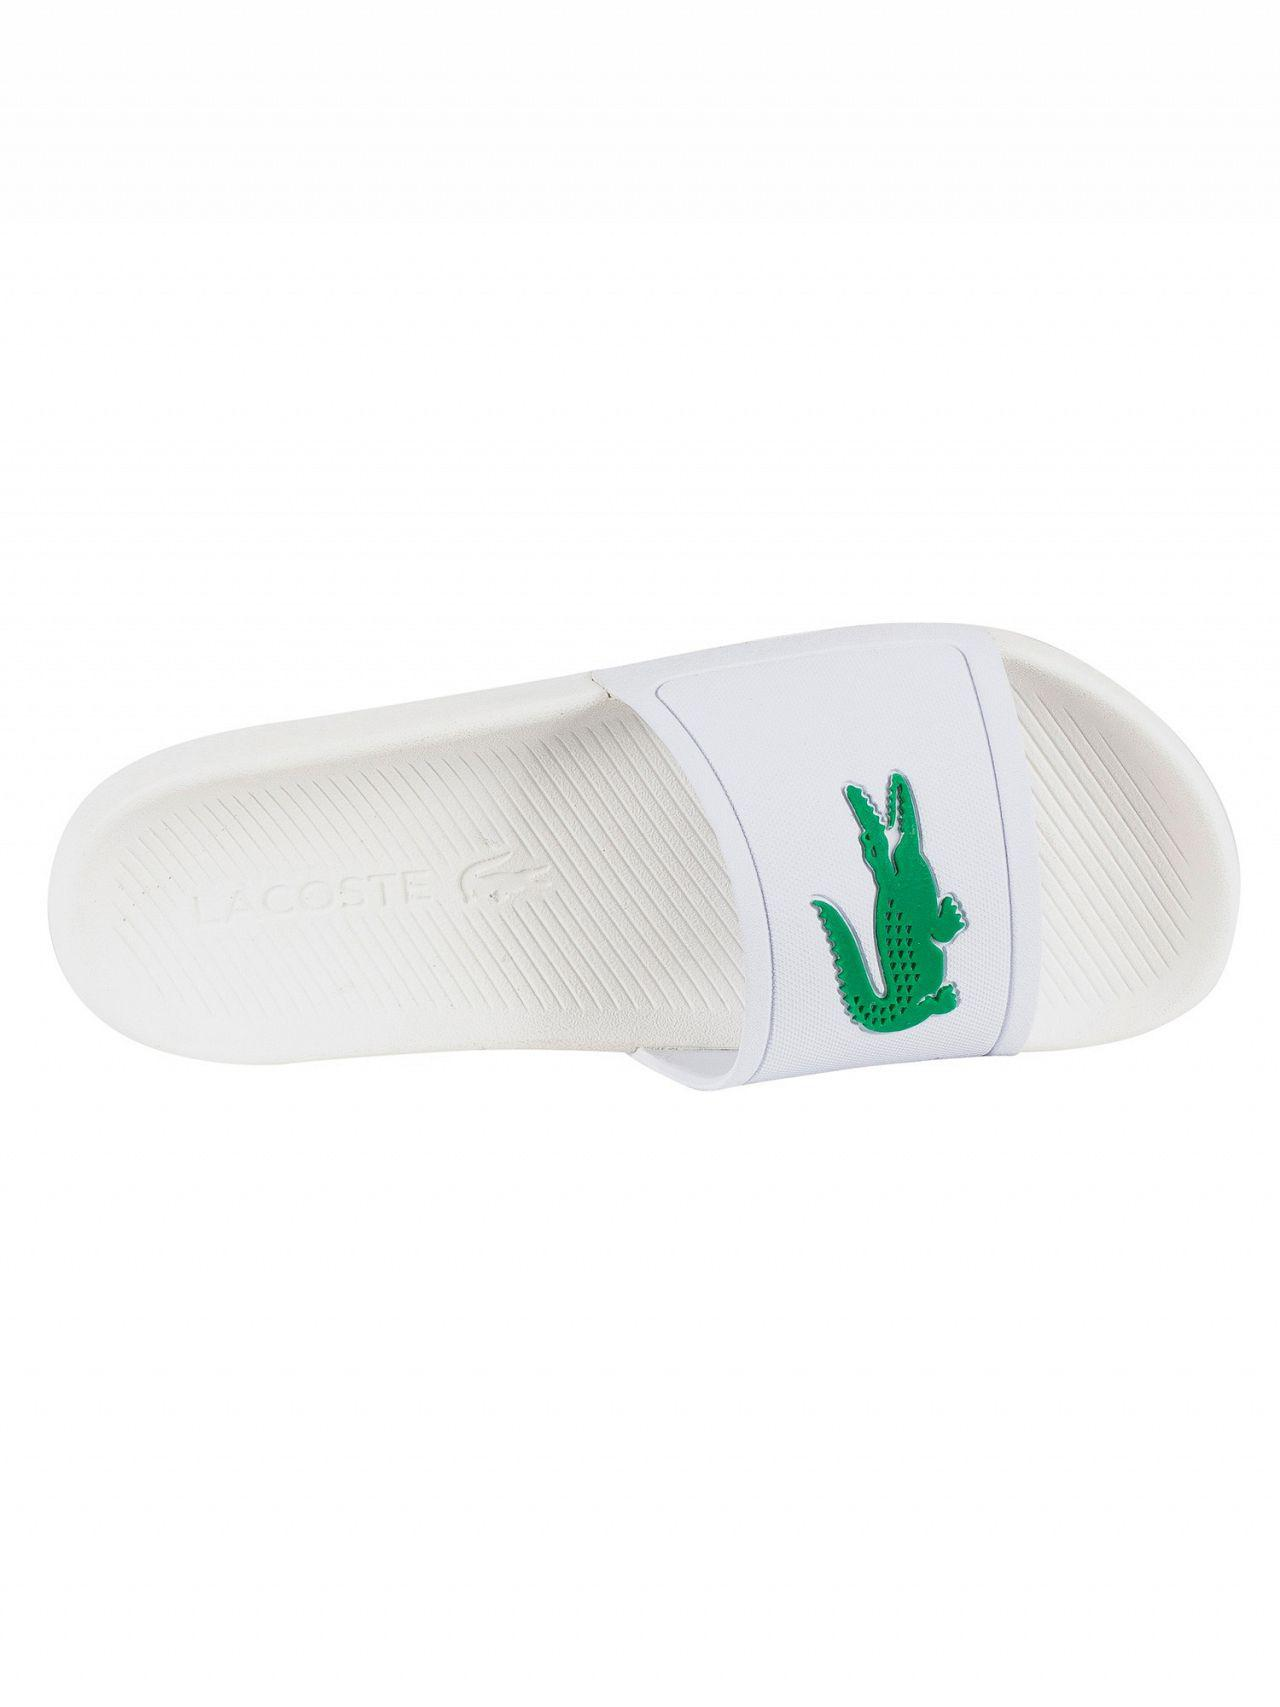 715b2d972195 Lacoste Croco Slide 119 1 Sandals in White for Men - Save 20% - Lyst